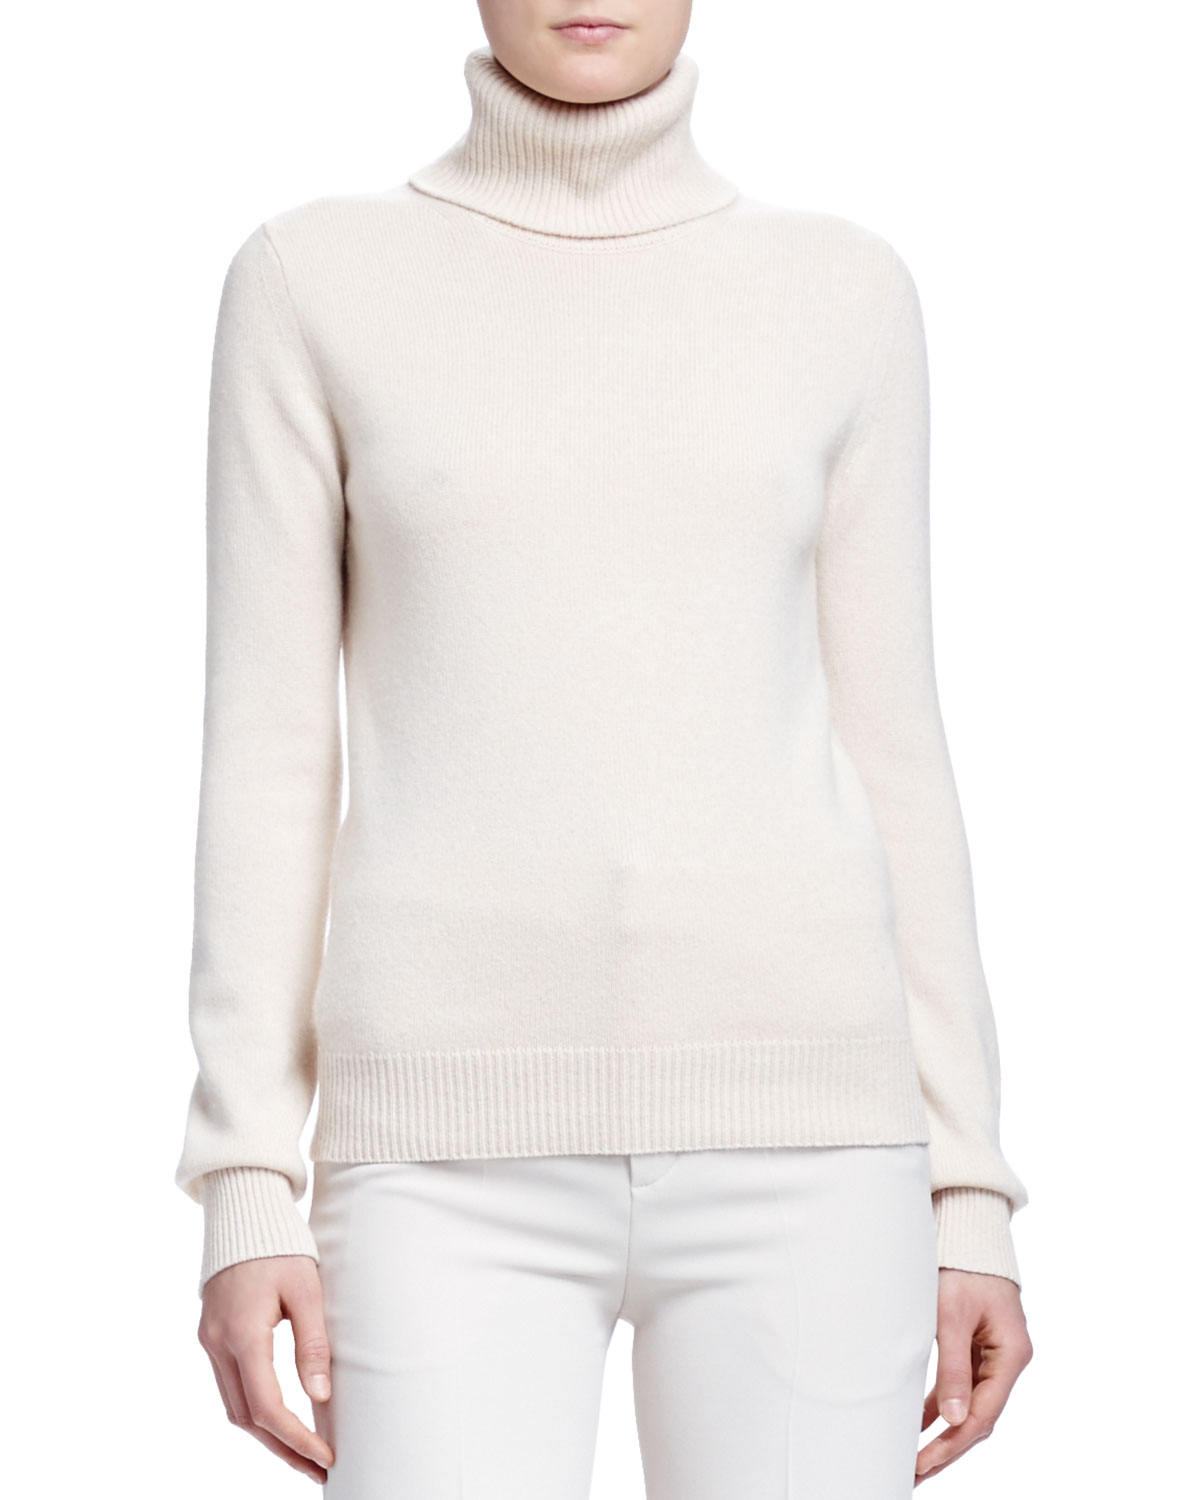 Chloé Cashmere Ribbed-knit Turtleneck Sweater in Natural | Lyst